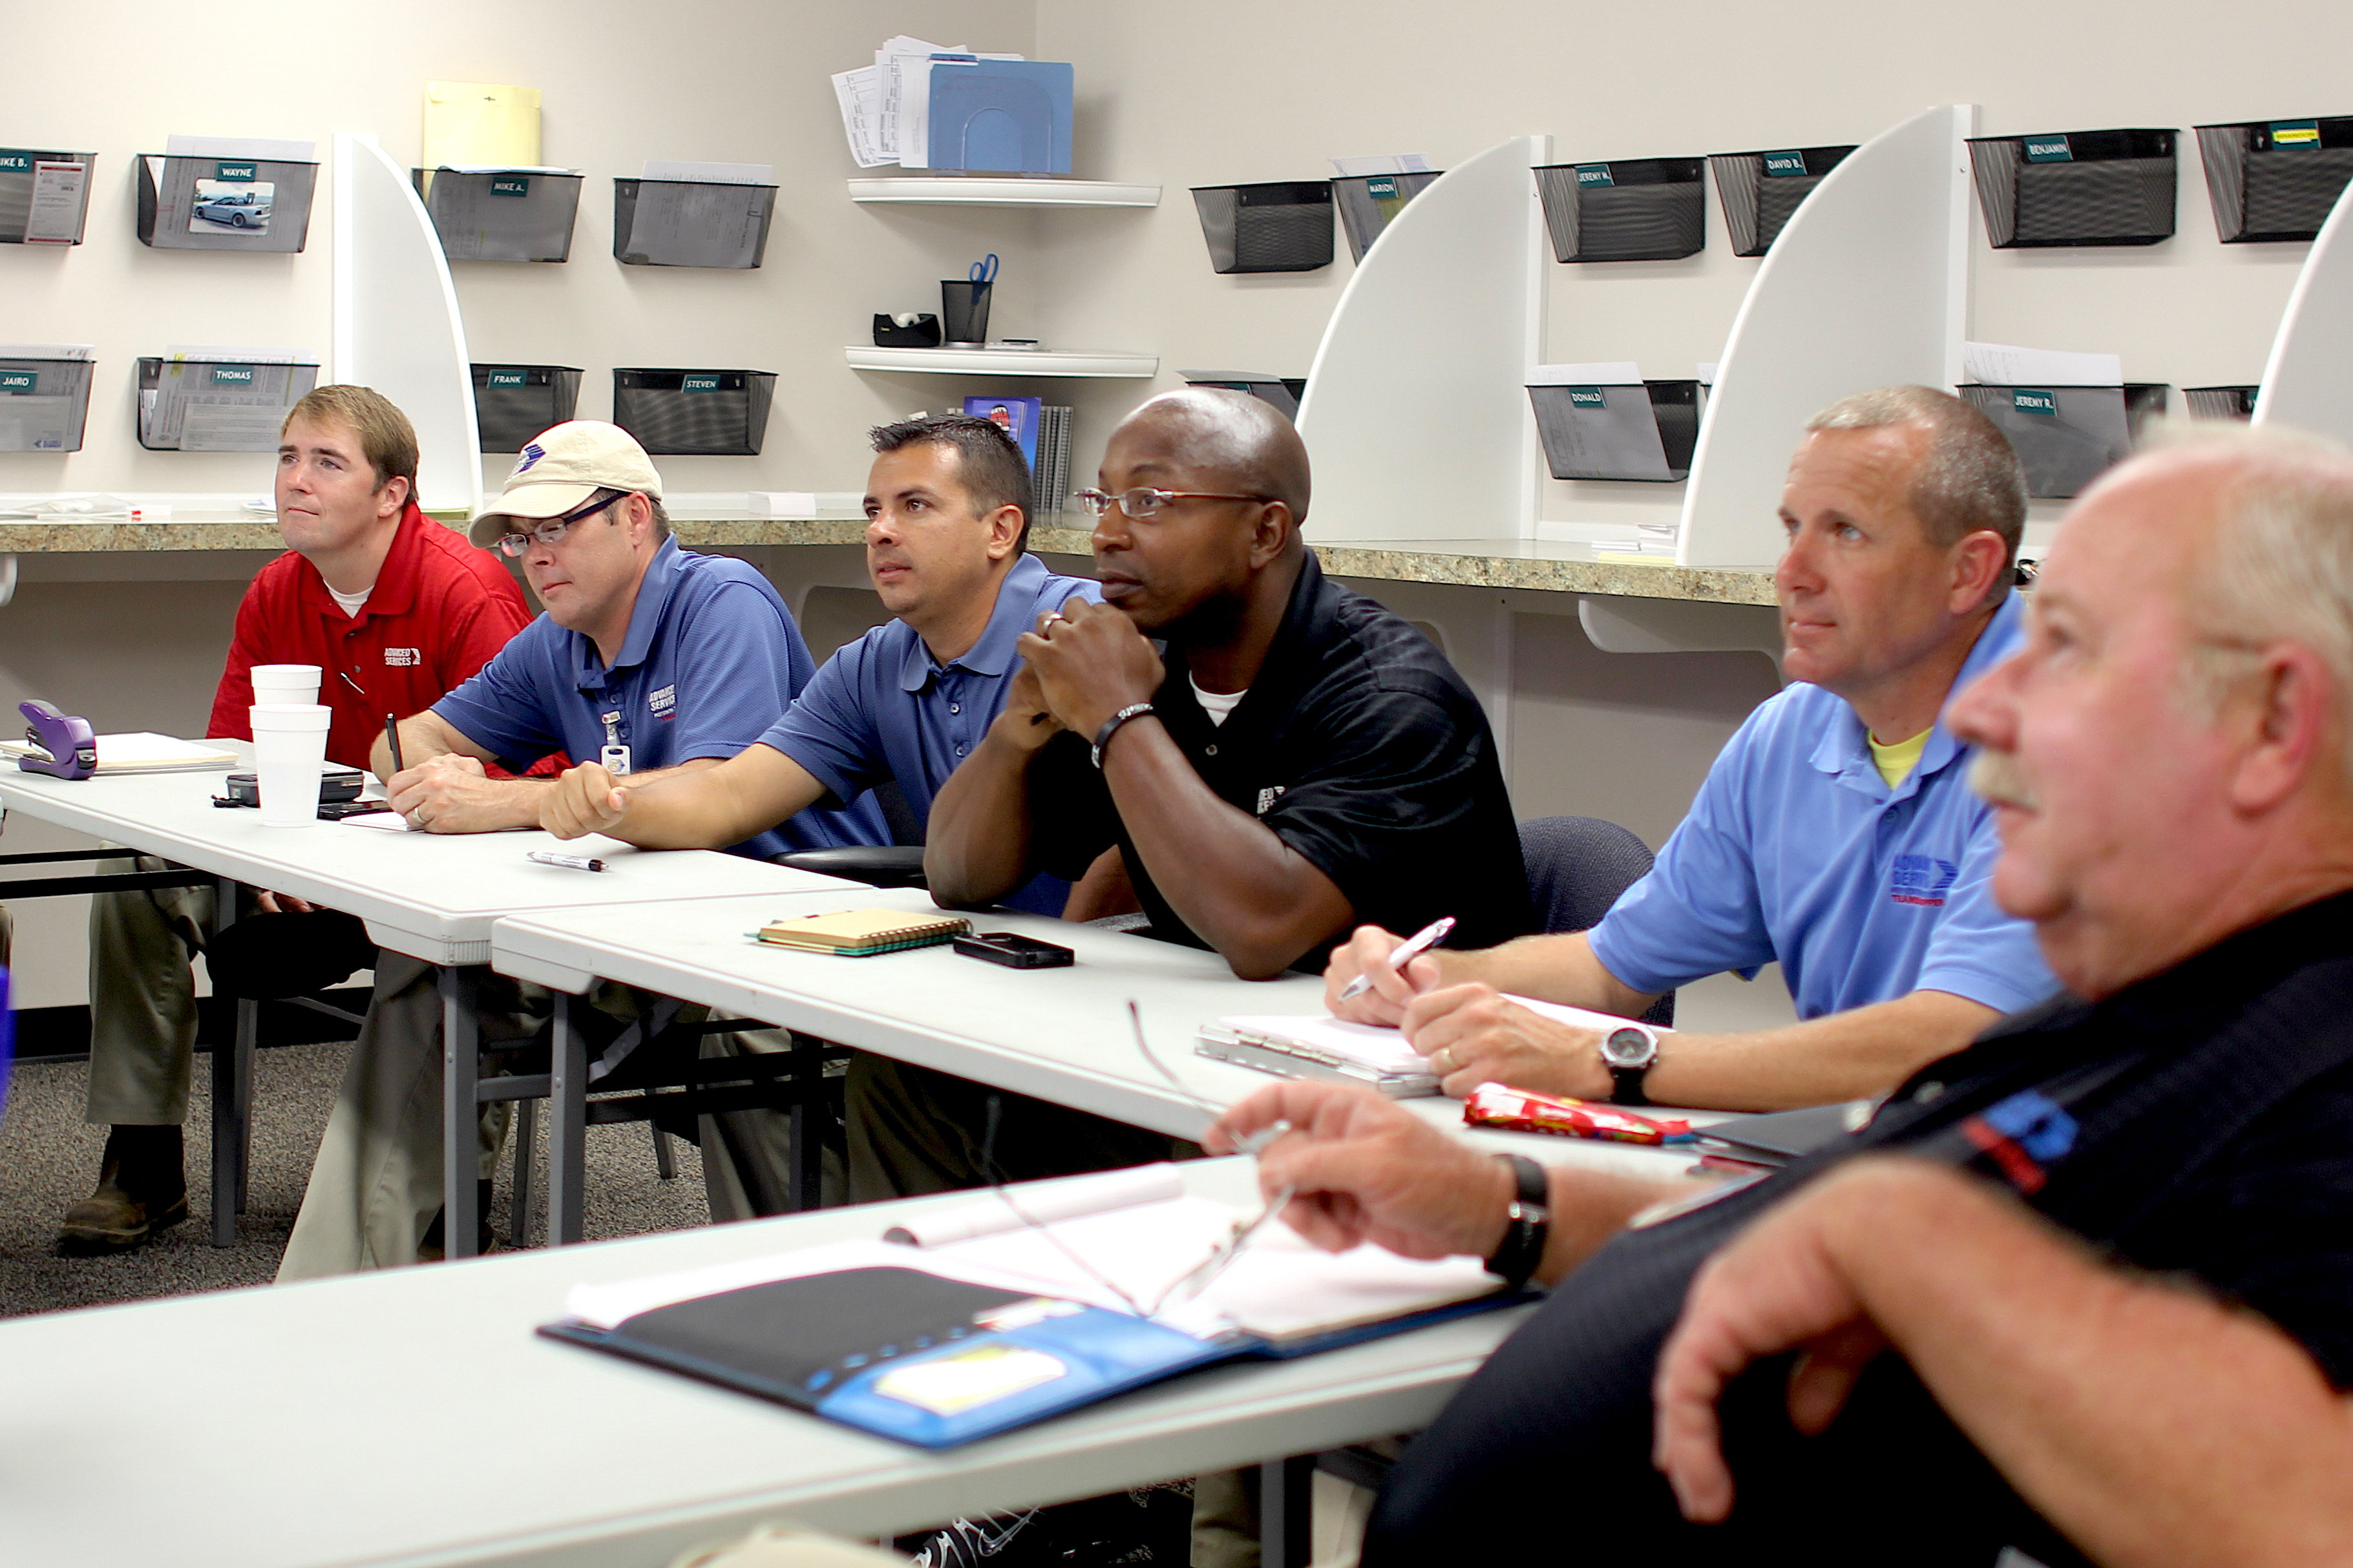 A webinar series from Univerity of Georgia Cooperative Extension saves companies time, travel and expenses and provides Extension agents user- friendly and useful information. Getting the Best of Pests reaches out to the Georgia Green Industry offering CEU Category Credits from the privacy and luxury of a home or office environment. The pest control operators shown logged into a webinar from their Florida-based office.